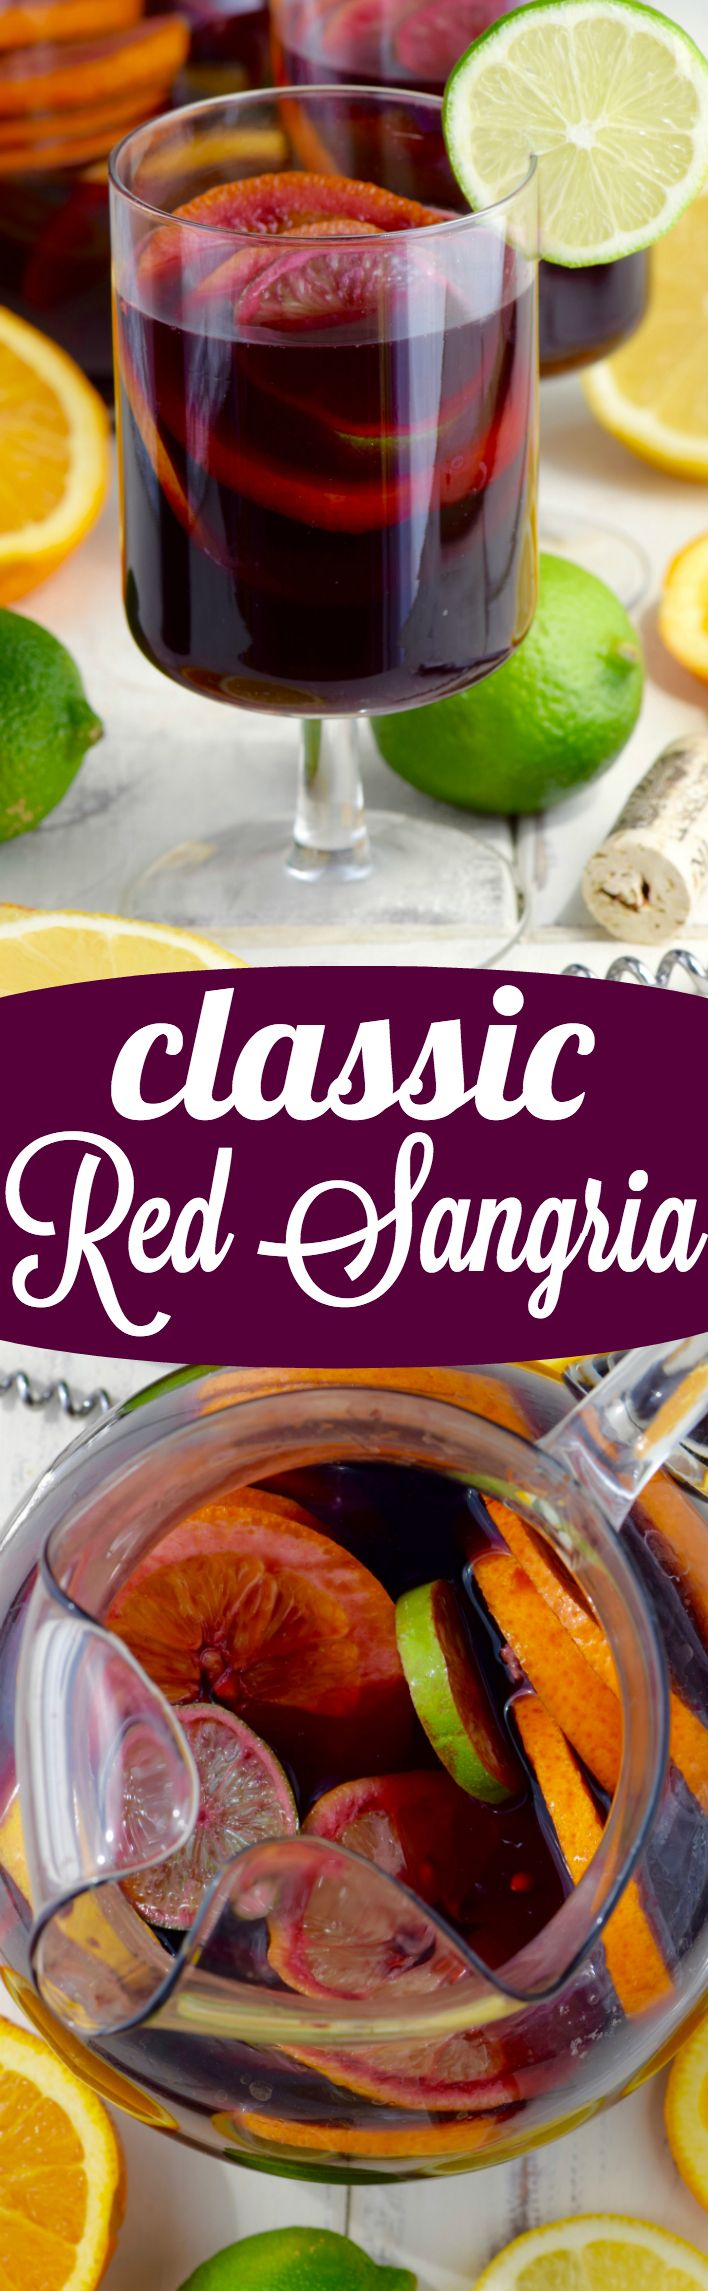 A traditional Red Sangria that comes together in about 10 minutes and is SO delicious!